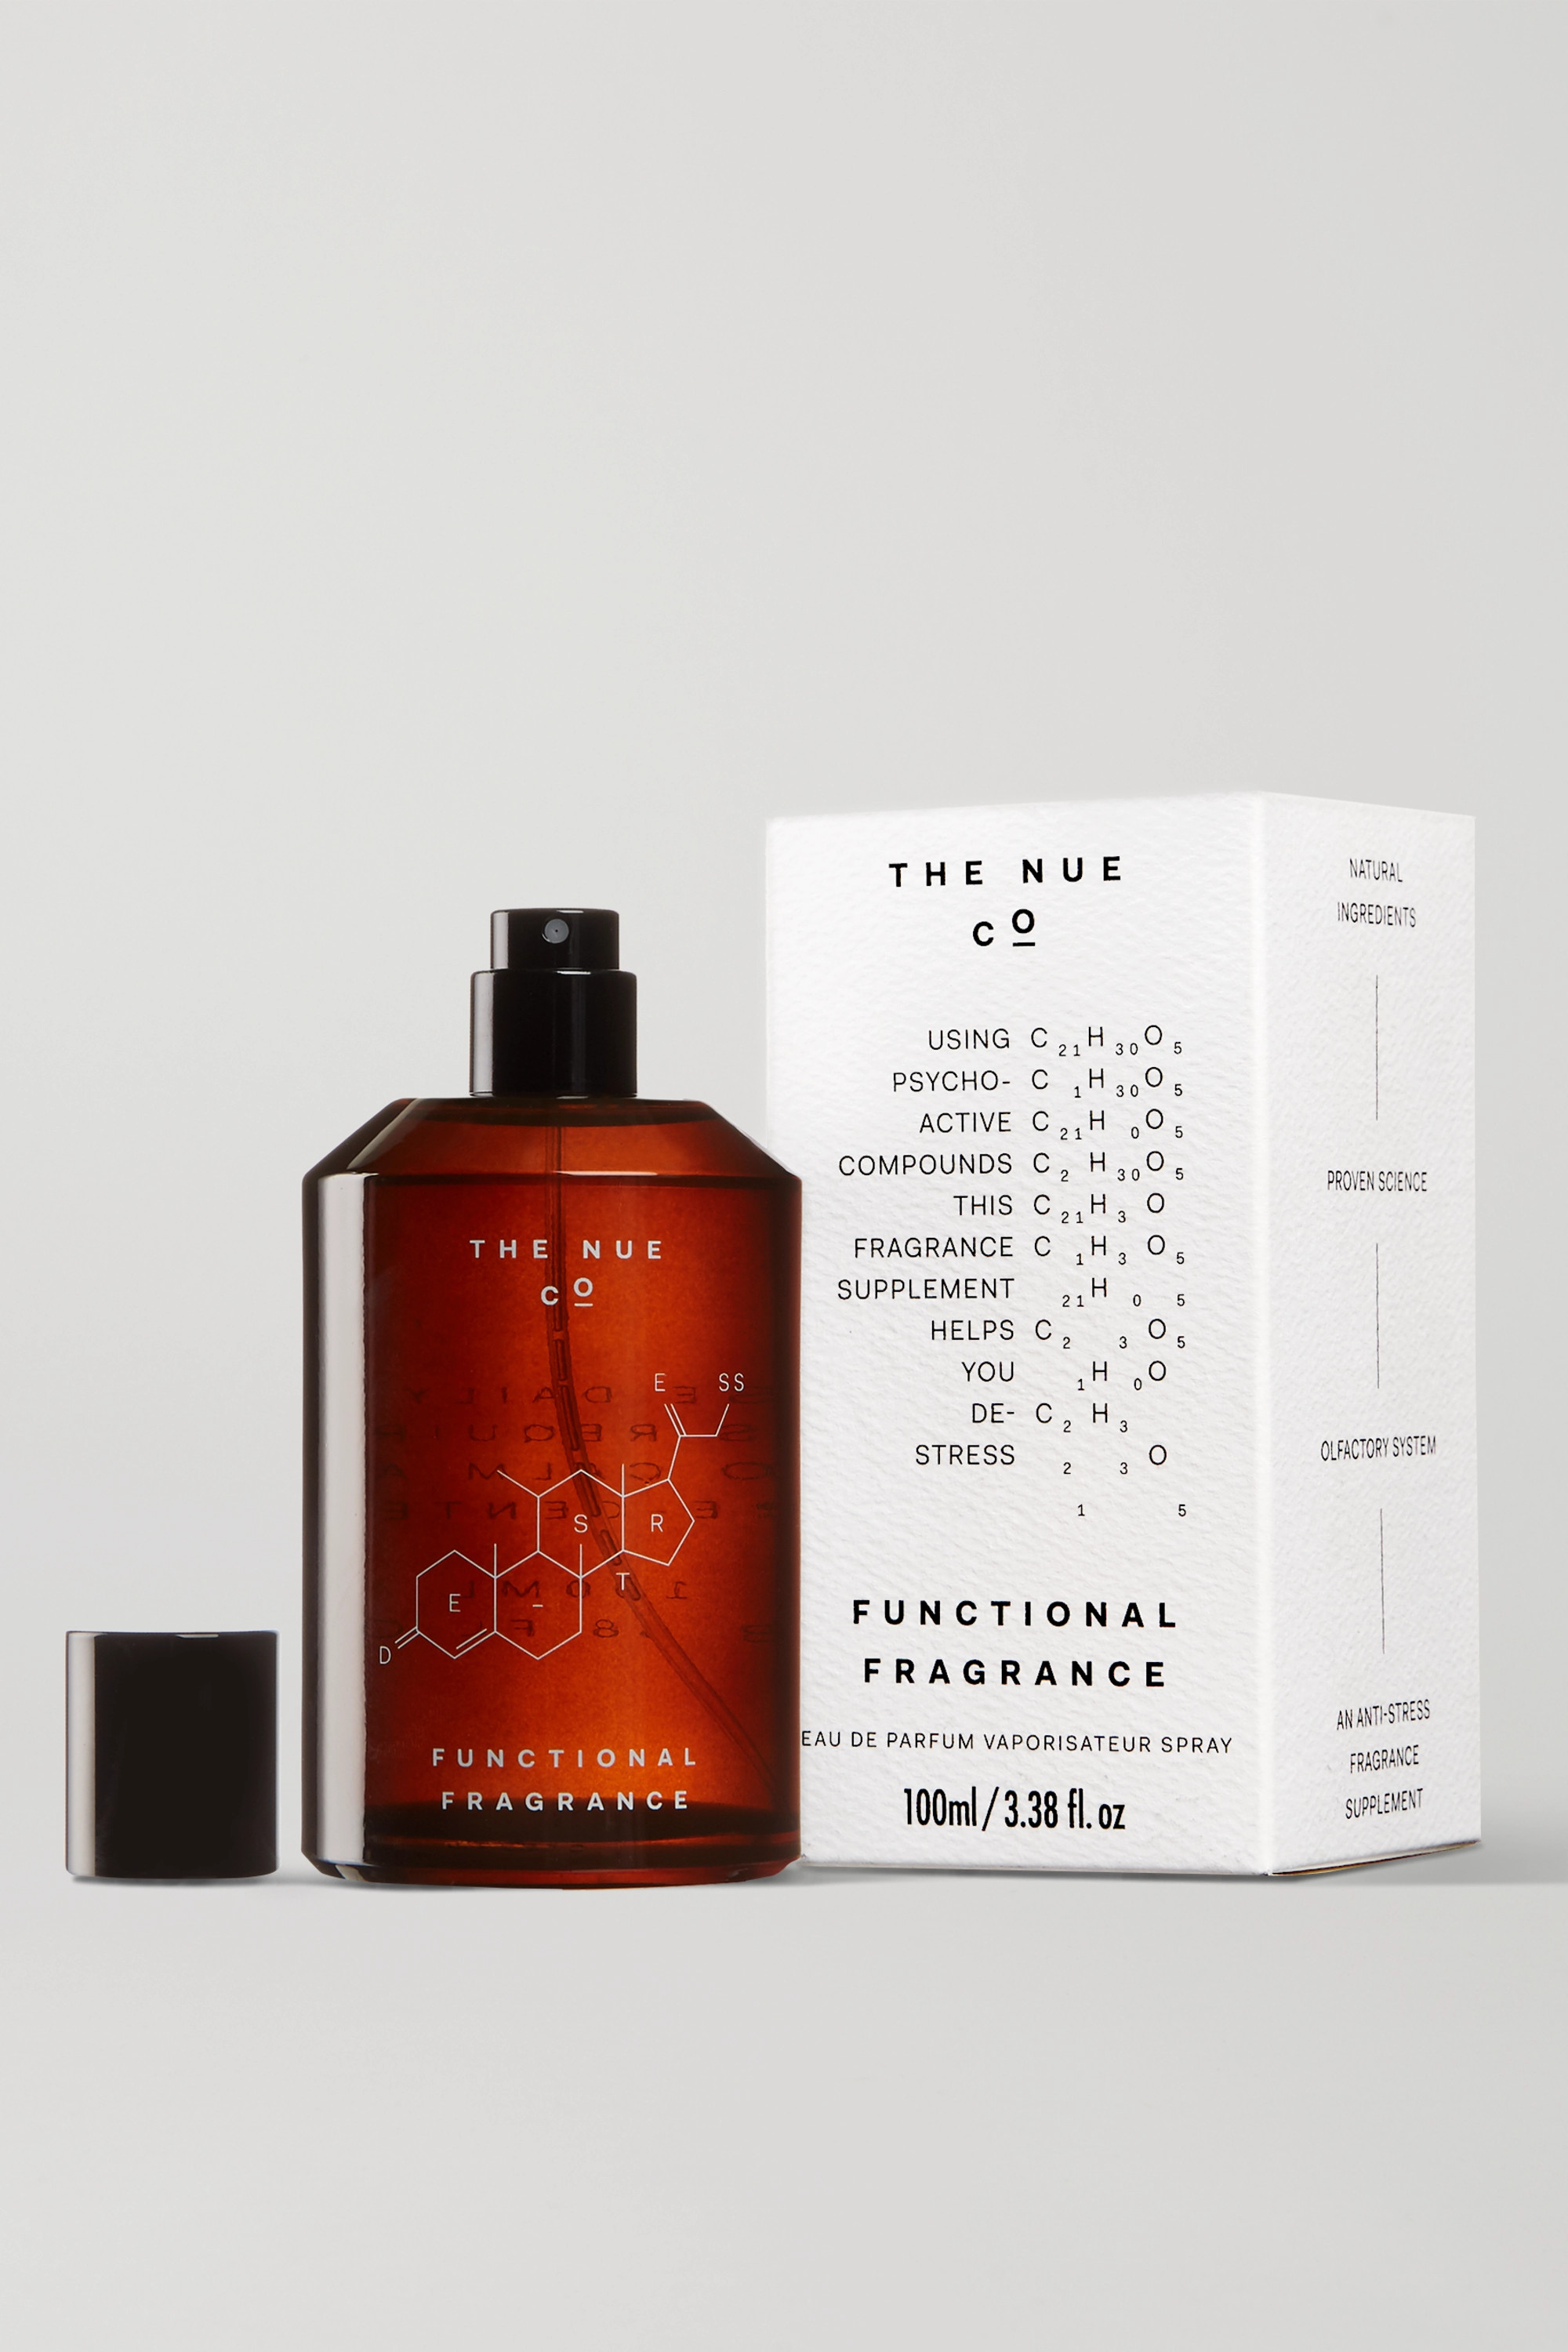 The Nue Co. Functional Fragrance, 100ml